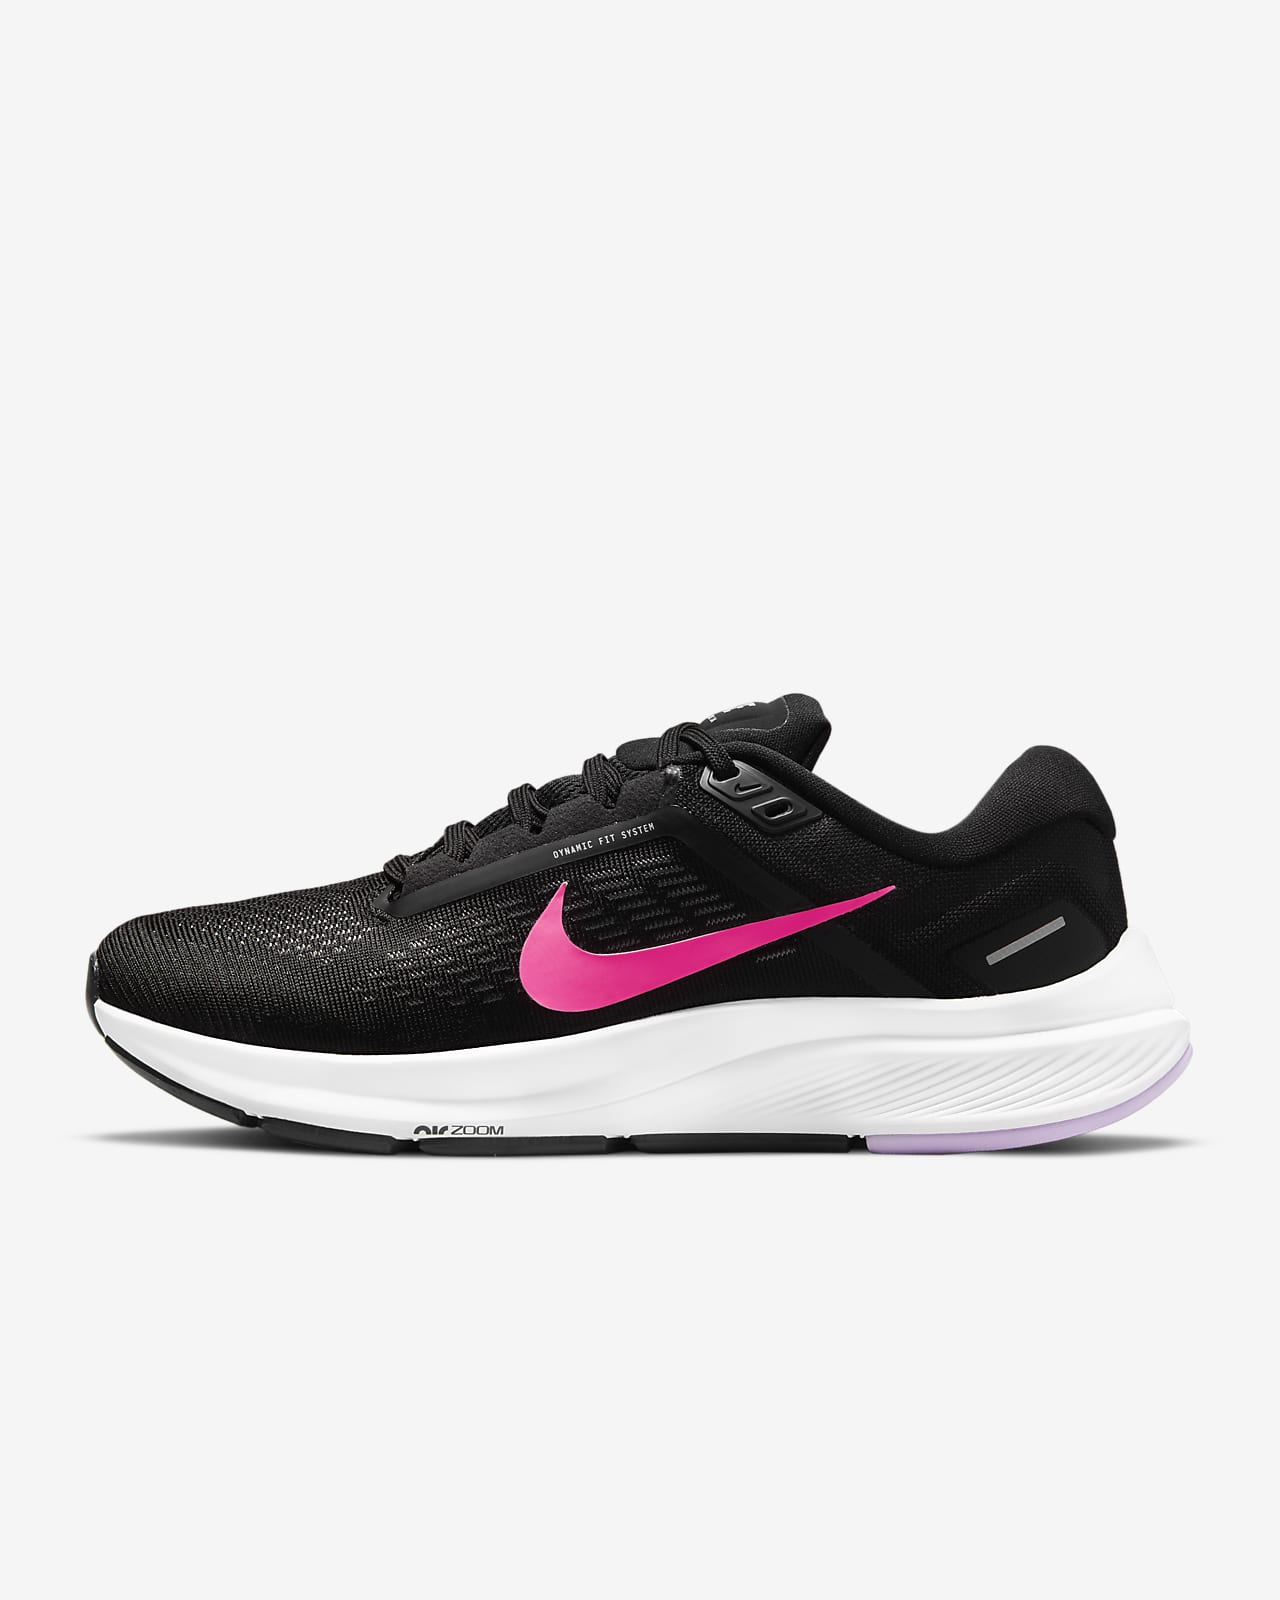 Nike Air Zoom Structure 24 Women's Road Running Shoes